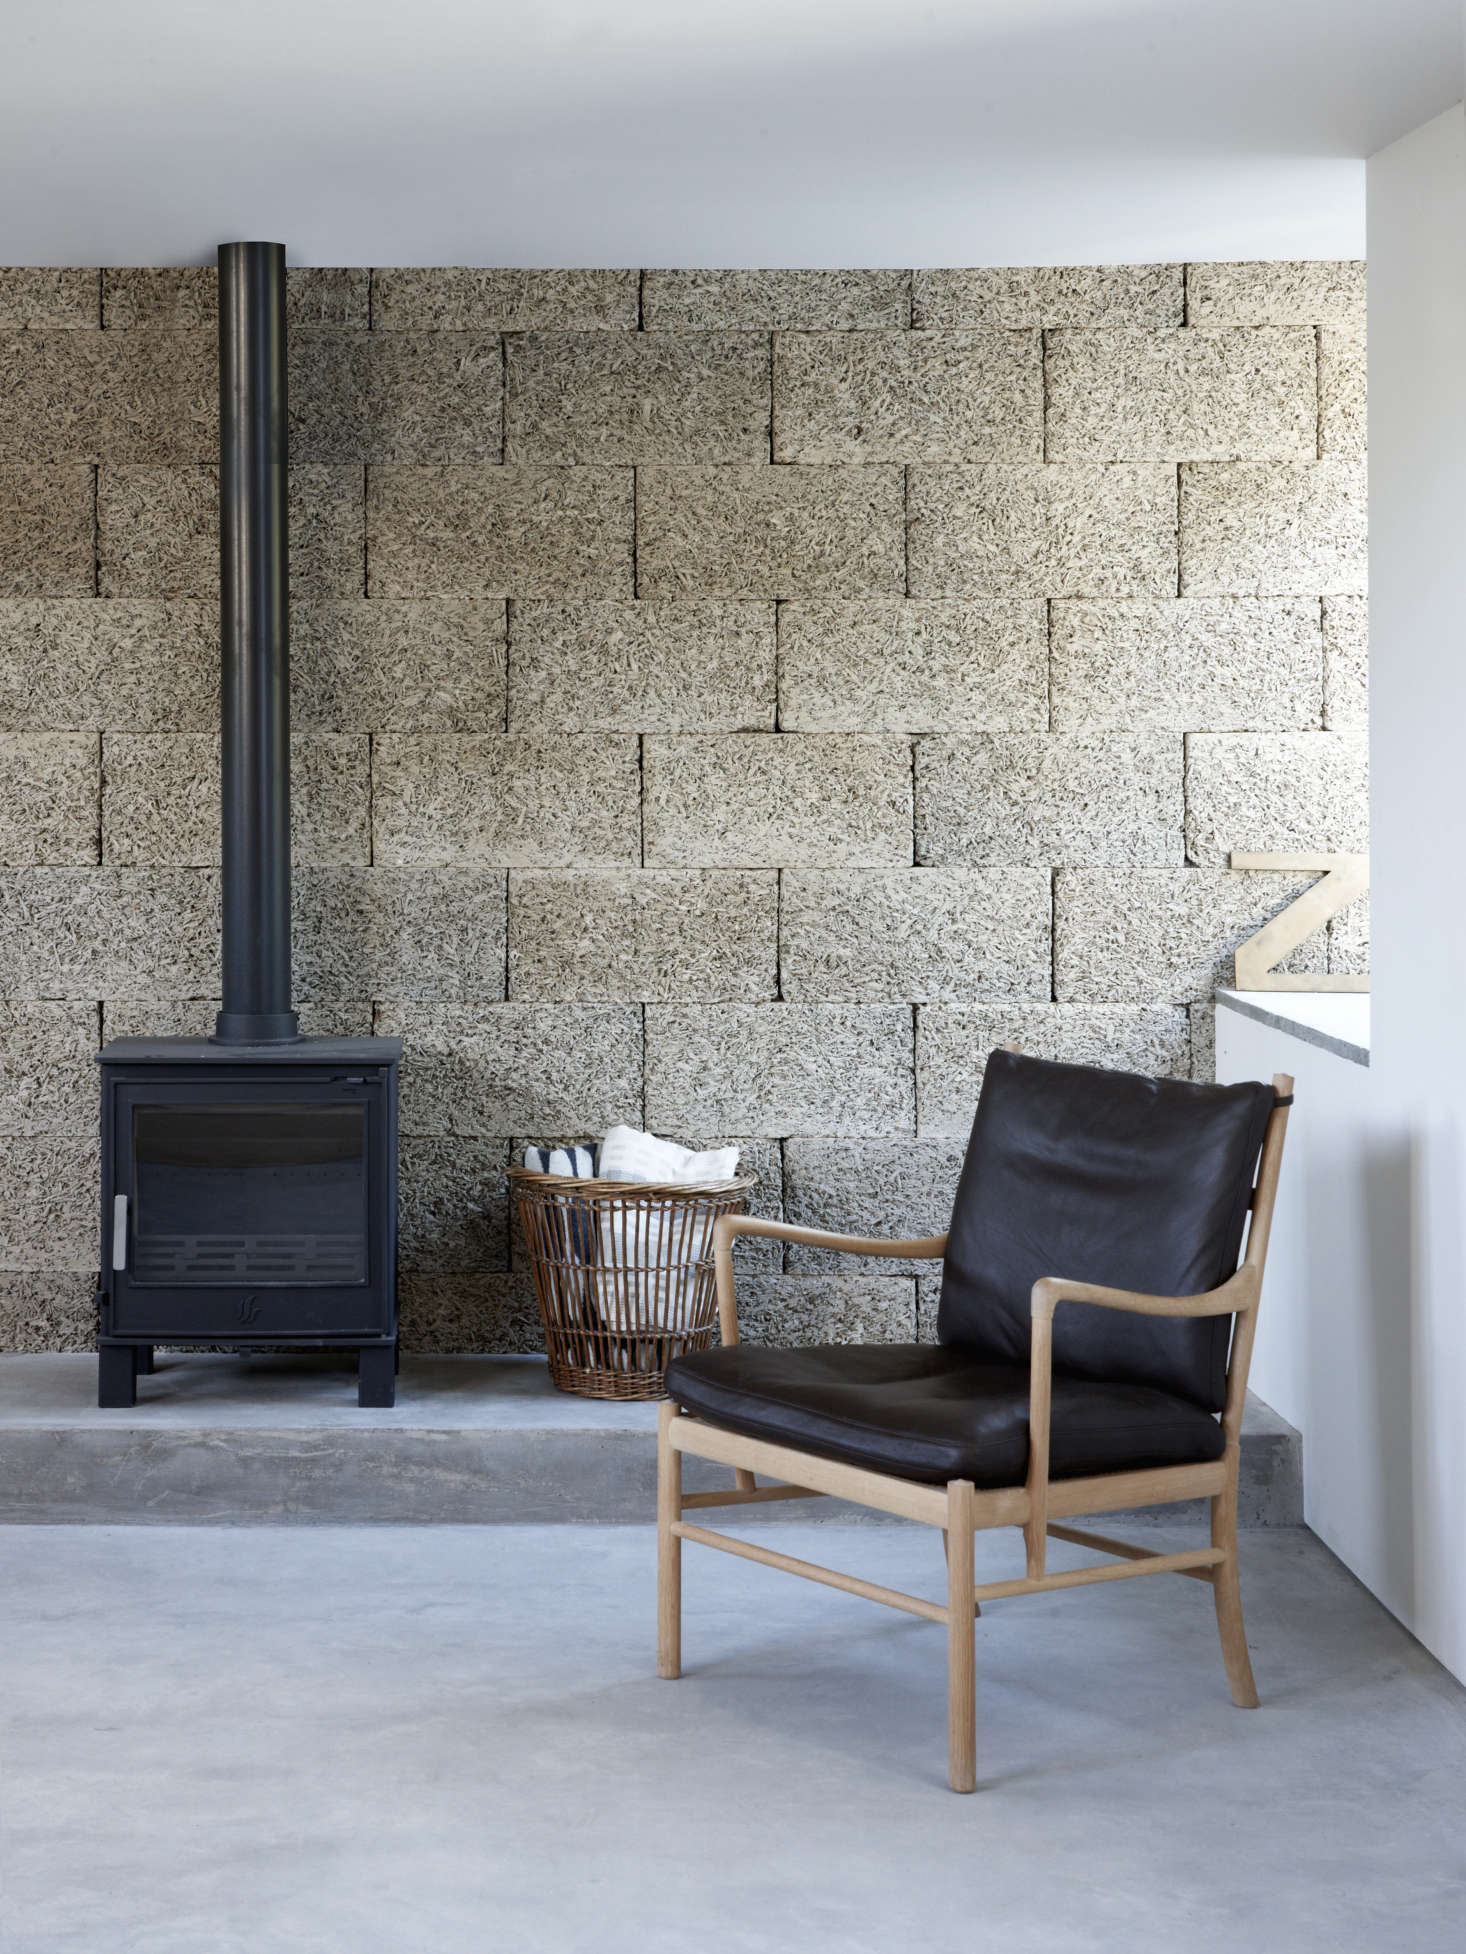 Textural wood wool blocks form the living room back wallandlend an intimacy to the space. (Also known as excelsior, these compressed strands of wood bonded with cement are traditionally used among other things as insulation.) The armchair is Ole Wanscher&#8